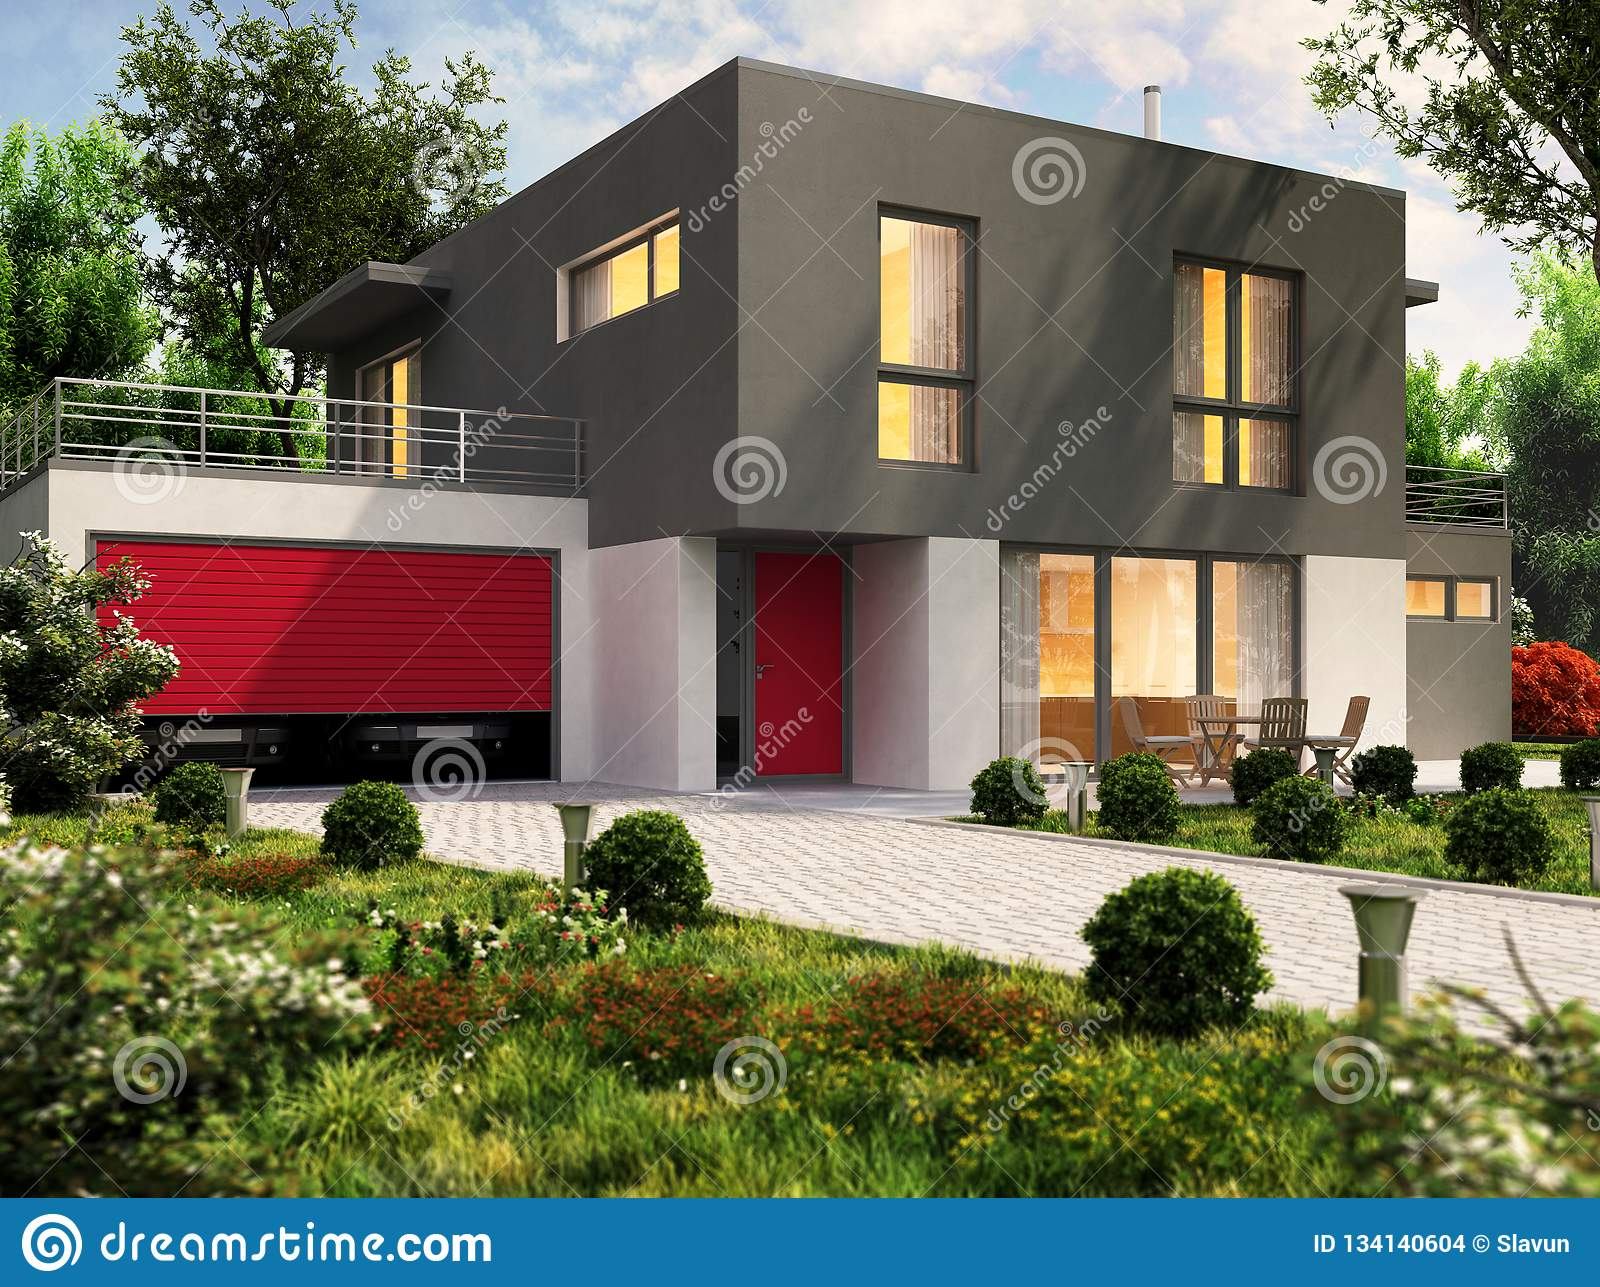 Modern House Design And Large Garage For A Cars Stock Photo Image Of Building Modern 134140604